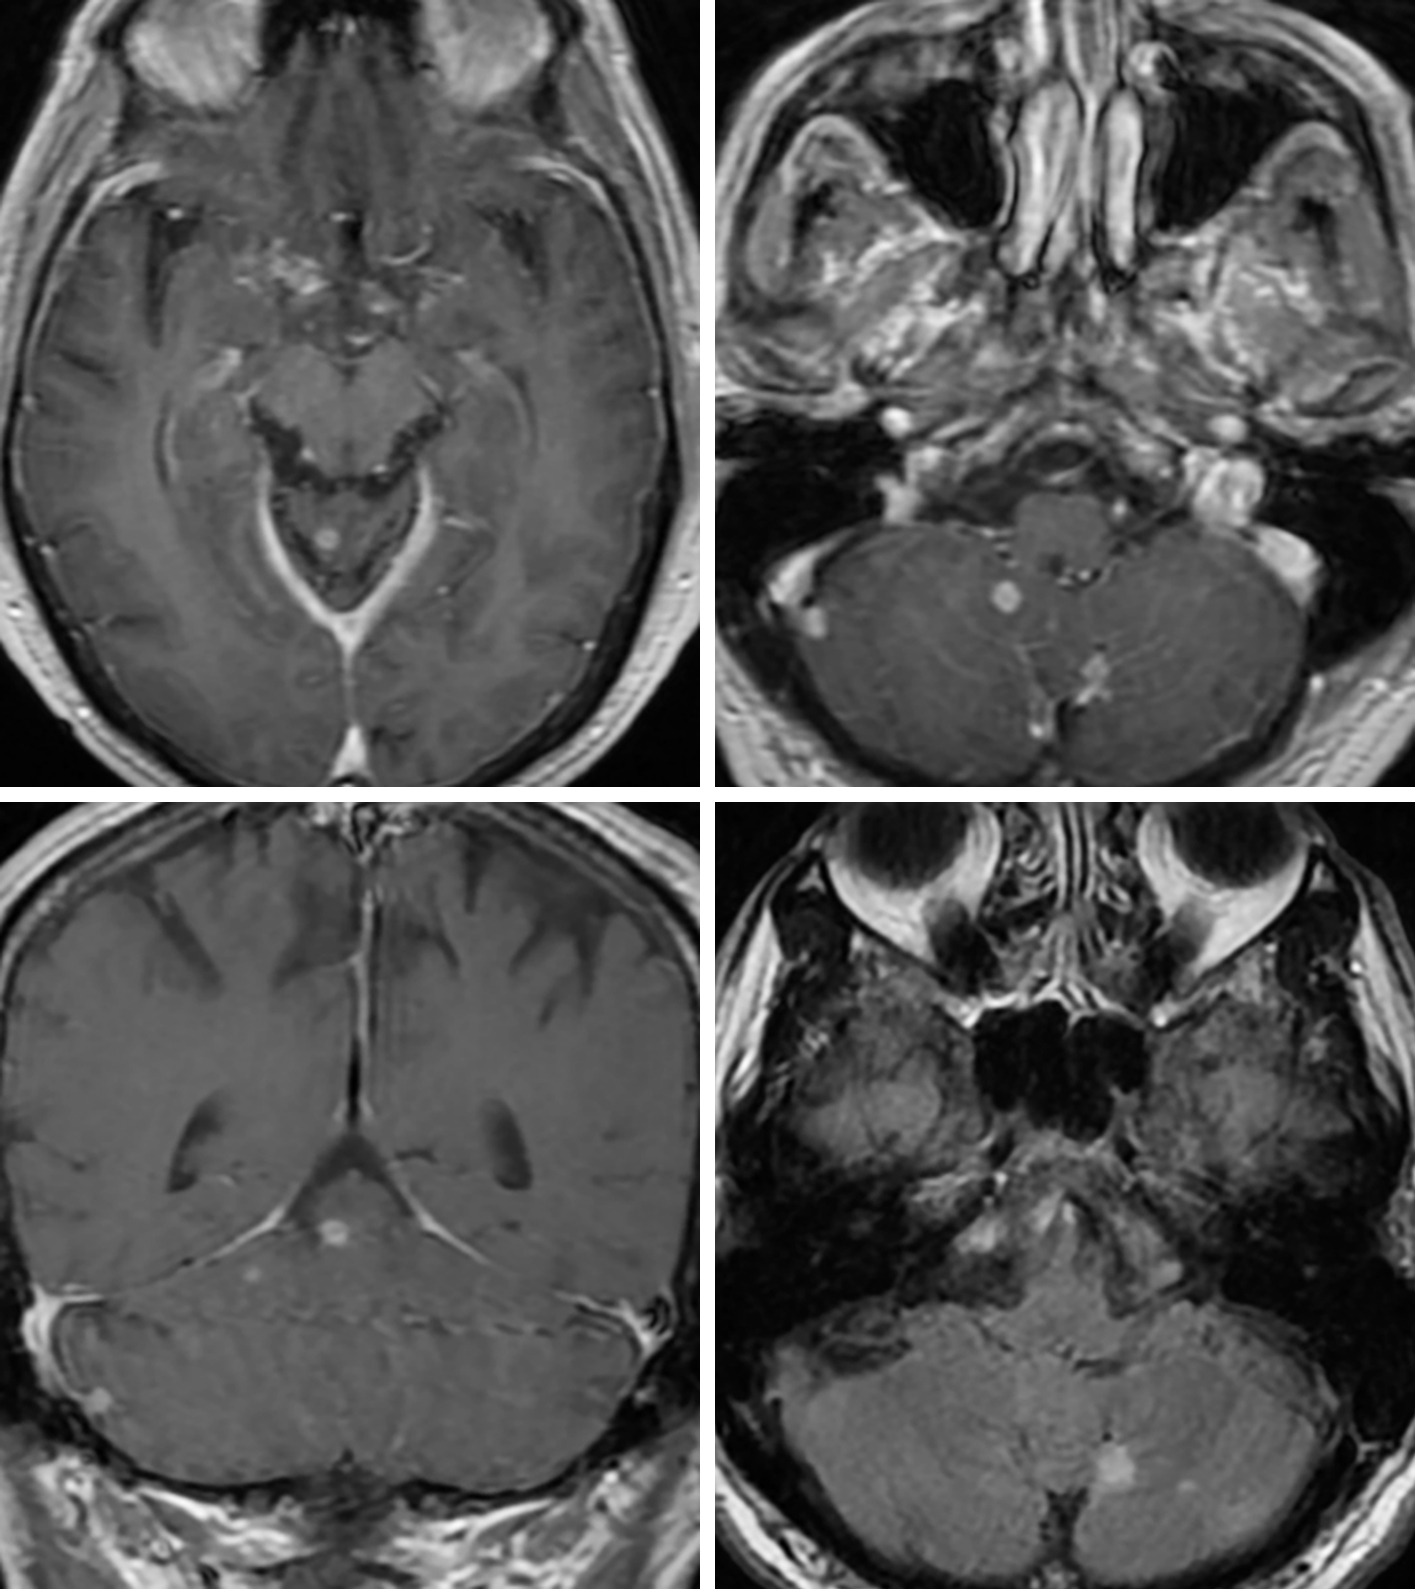 Figure 2: Axial (top row left, top row right) and coronal (bottom row left) contrast-enhanced T1 images demonstrate numerous tiny enhancing nodules along the basal cisterns and within and along the cerebellum reflecting the leptomeningeal disease and occasional parenchymal abscesses that are common with coccidiomycosis and can mimic small metastases. Axial FLAIR image (bottom row right) also shows the hyperintense local edema associated with small parenchymal cerebellar abscesses.